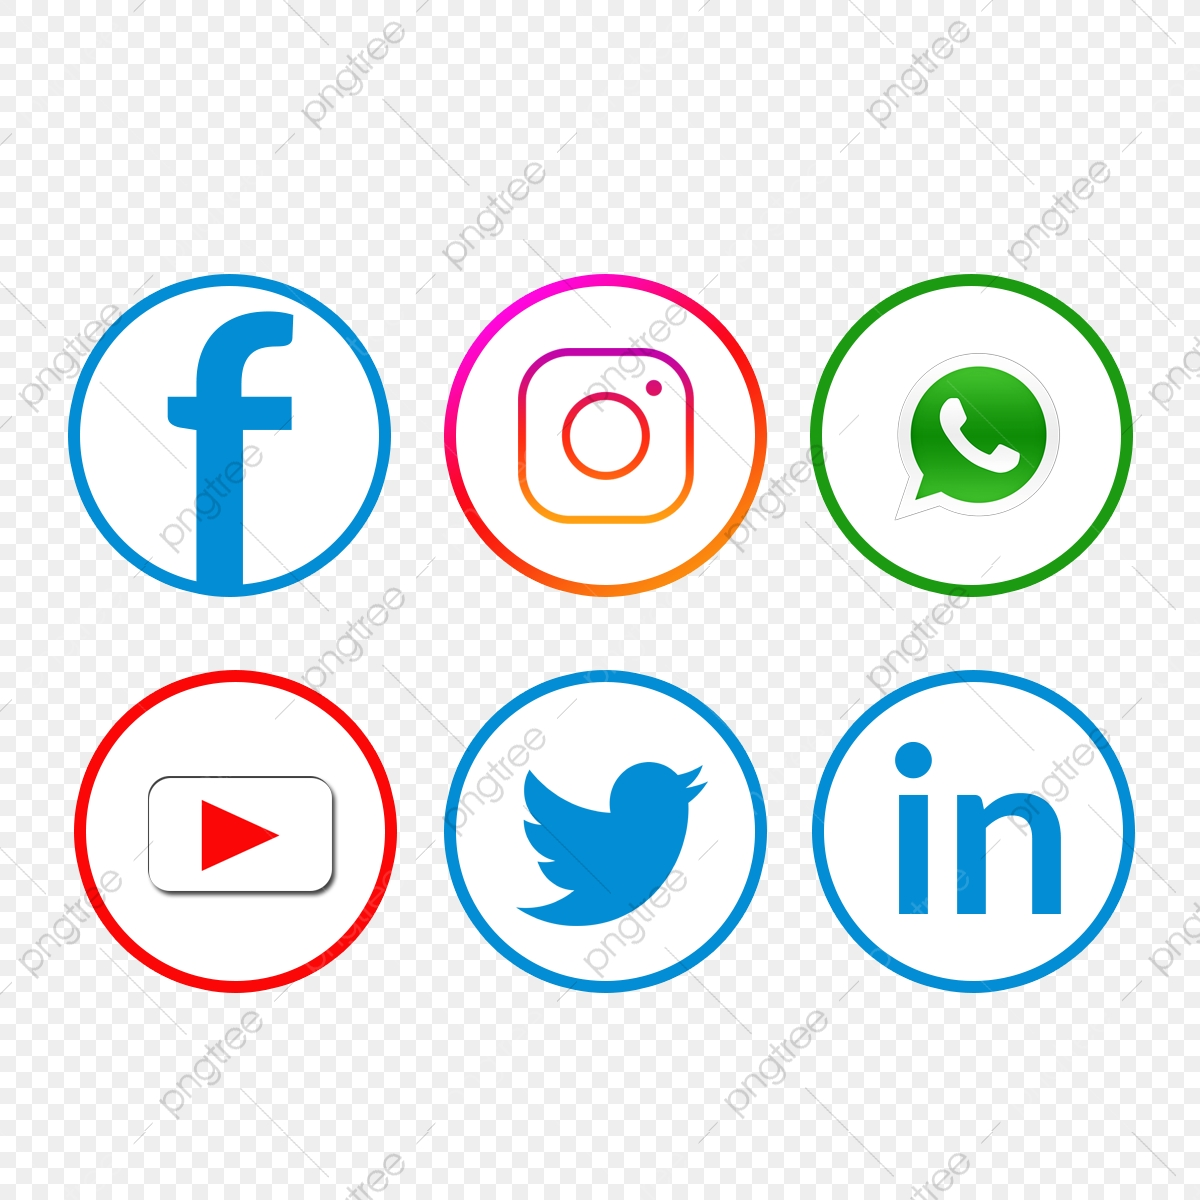 Social Media Icon Set Facebook Whatsapp Youtube Facebook Icons Whatsapp Icons Youtube Icons Png Transparent Clipart Image And Psd File For Free Download